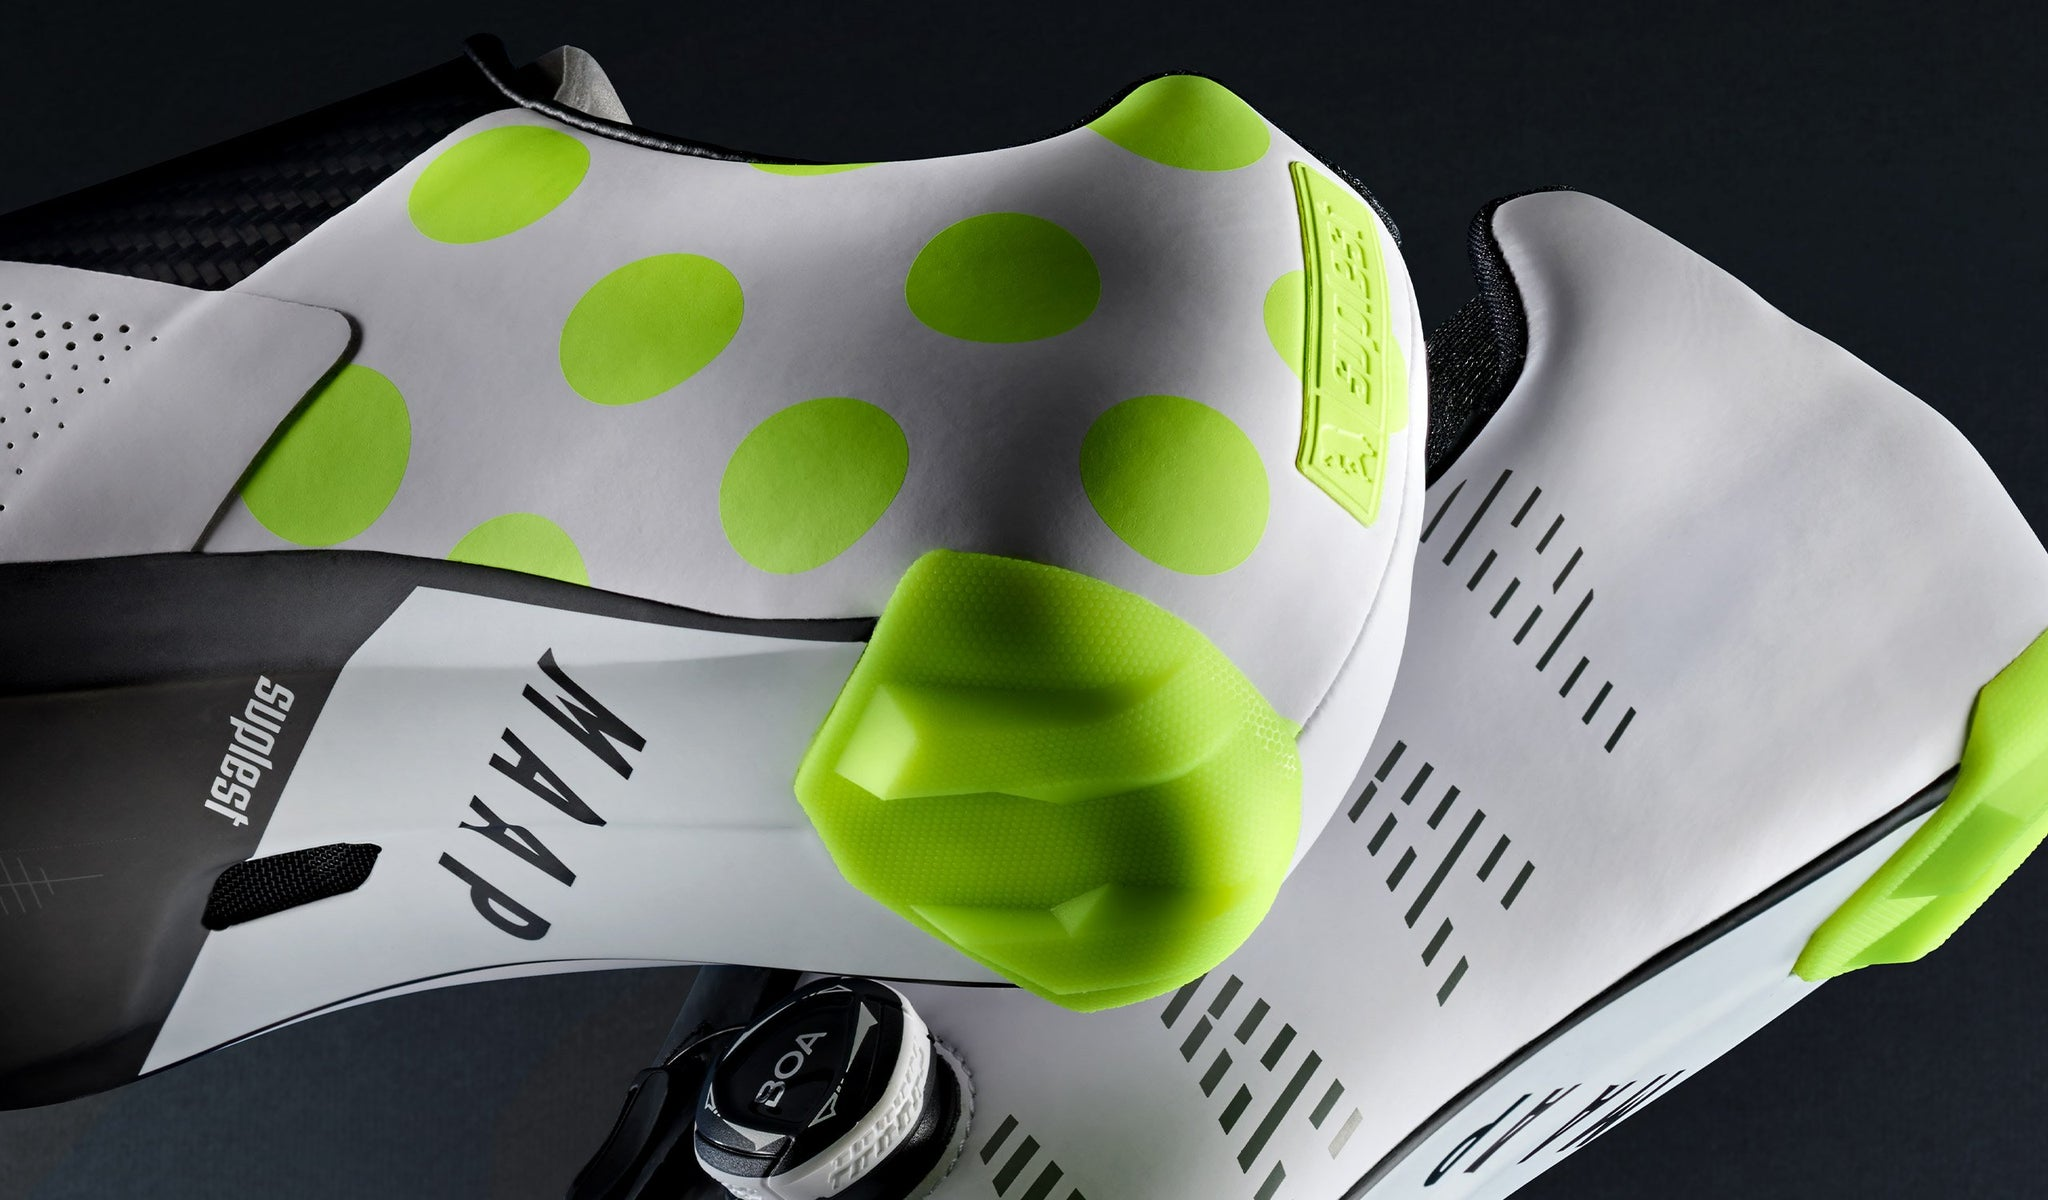 MAAP x Suplest Edge+ Pro Road Cycling Shoe in White.